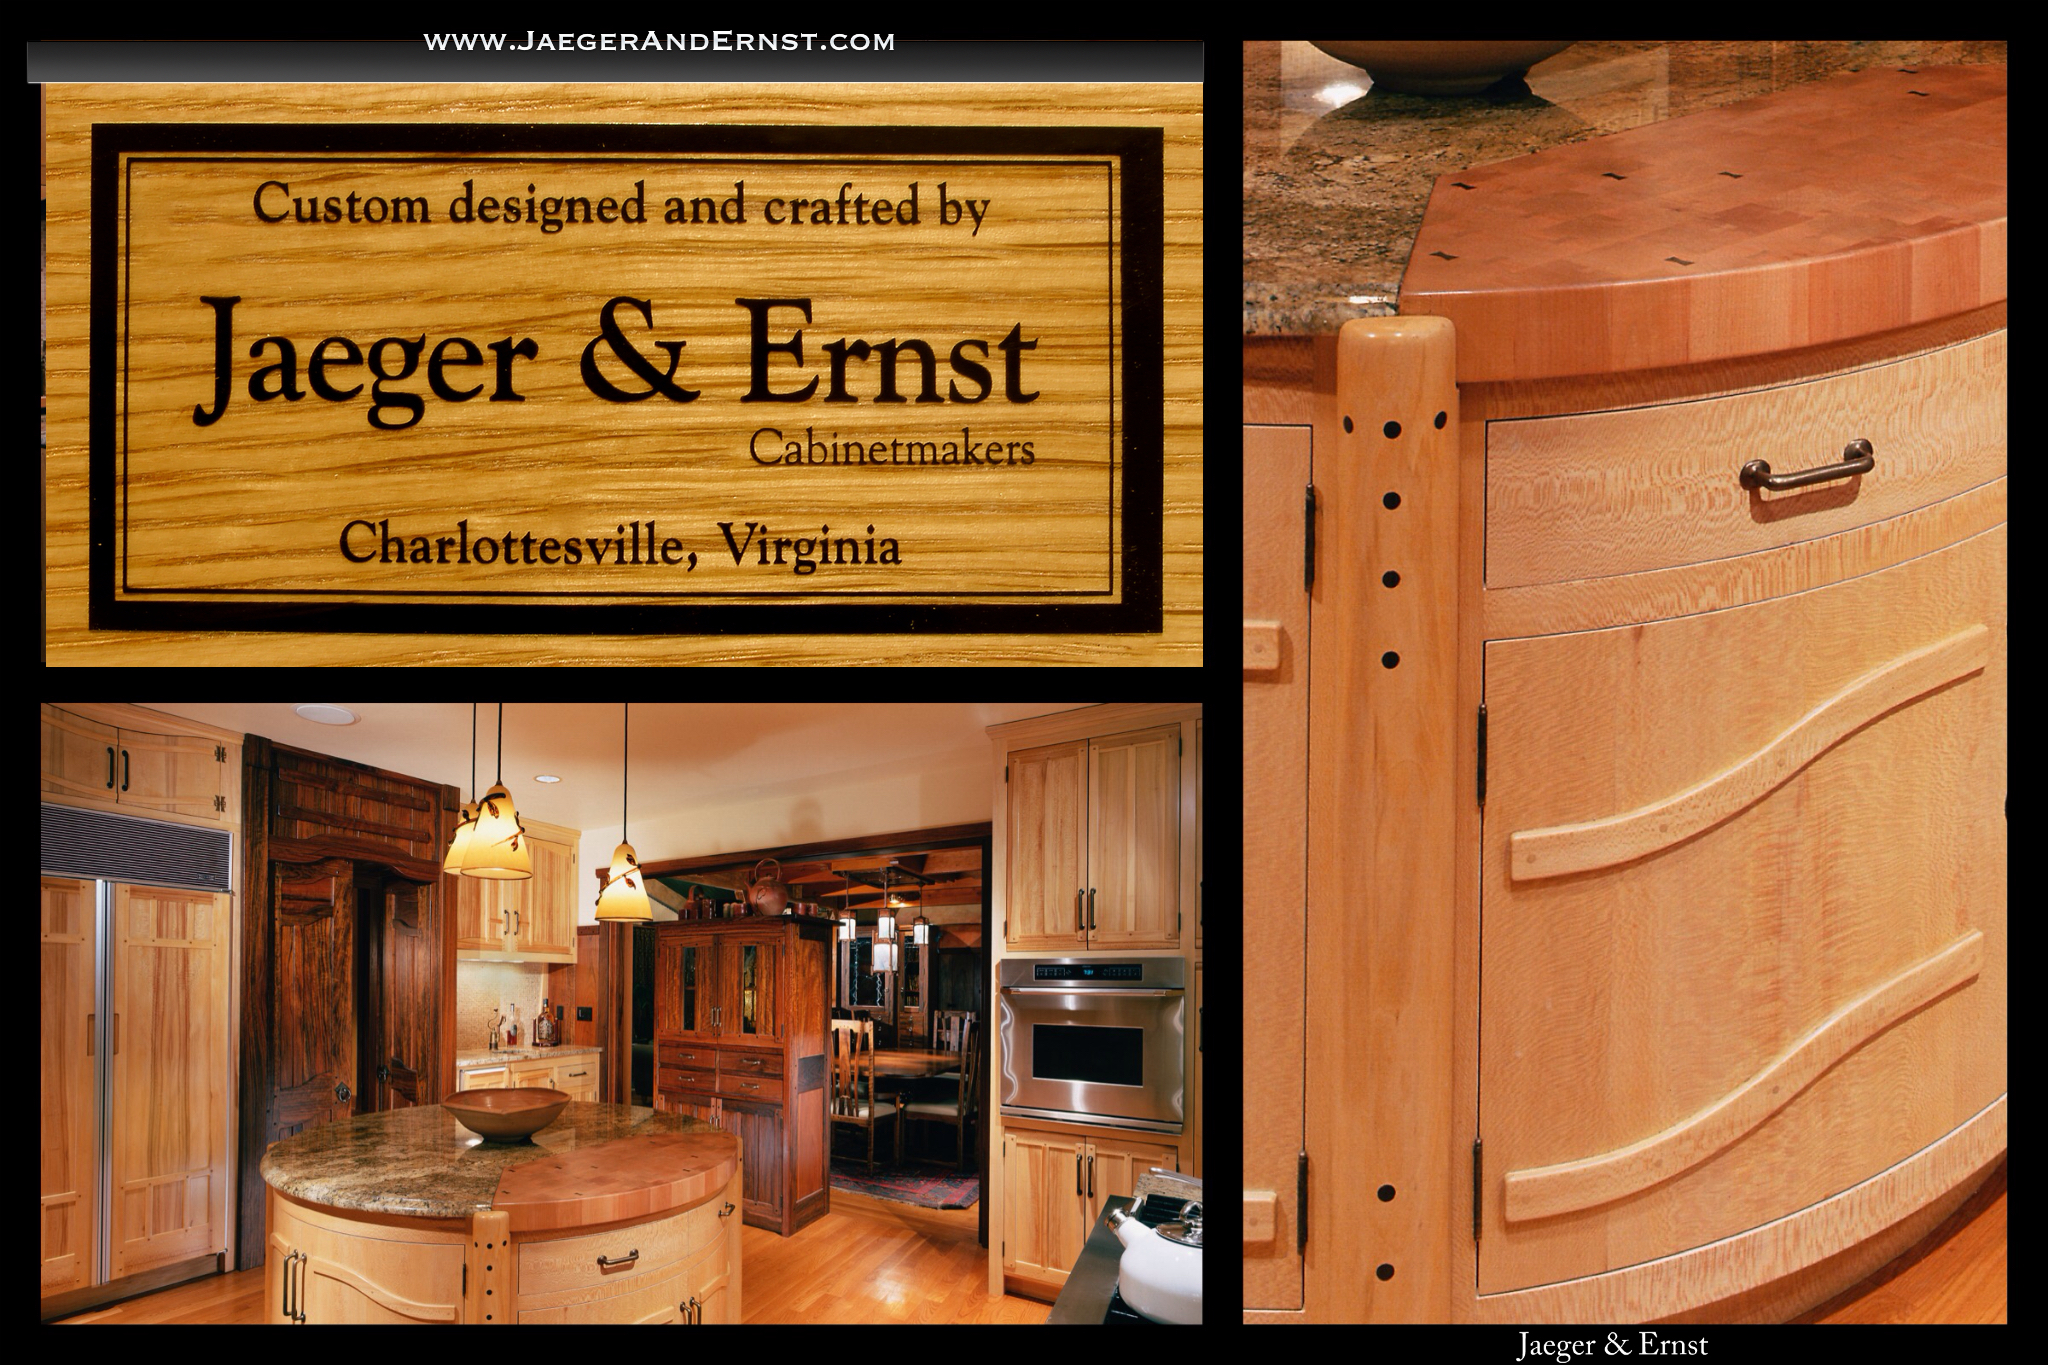 www.JaegerAndErnst.com Local Custom Kitchen Cabinetry Designers Best in Ca, Fl, Ny Ny, MA, DC. Most reliable, dependable, and service oriented, design/build cabinet makers, with 43 years of handmade and individually designed, custom kitchens and interior woodworking,